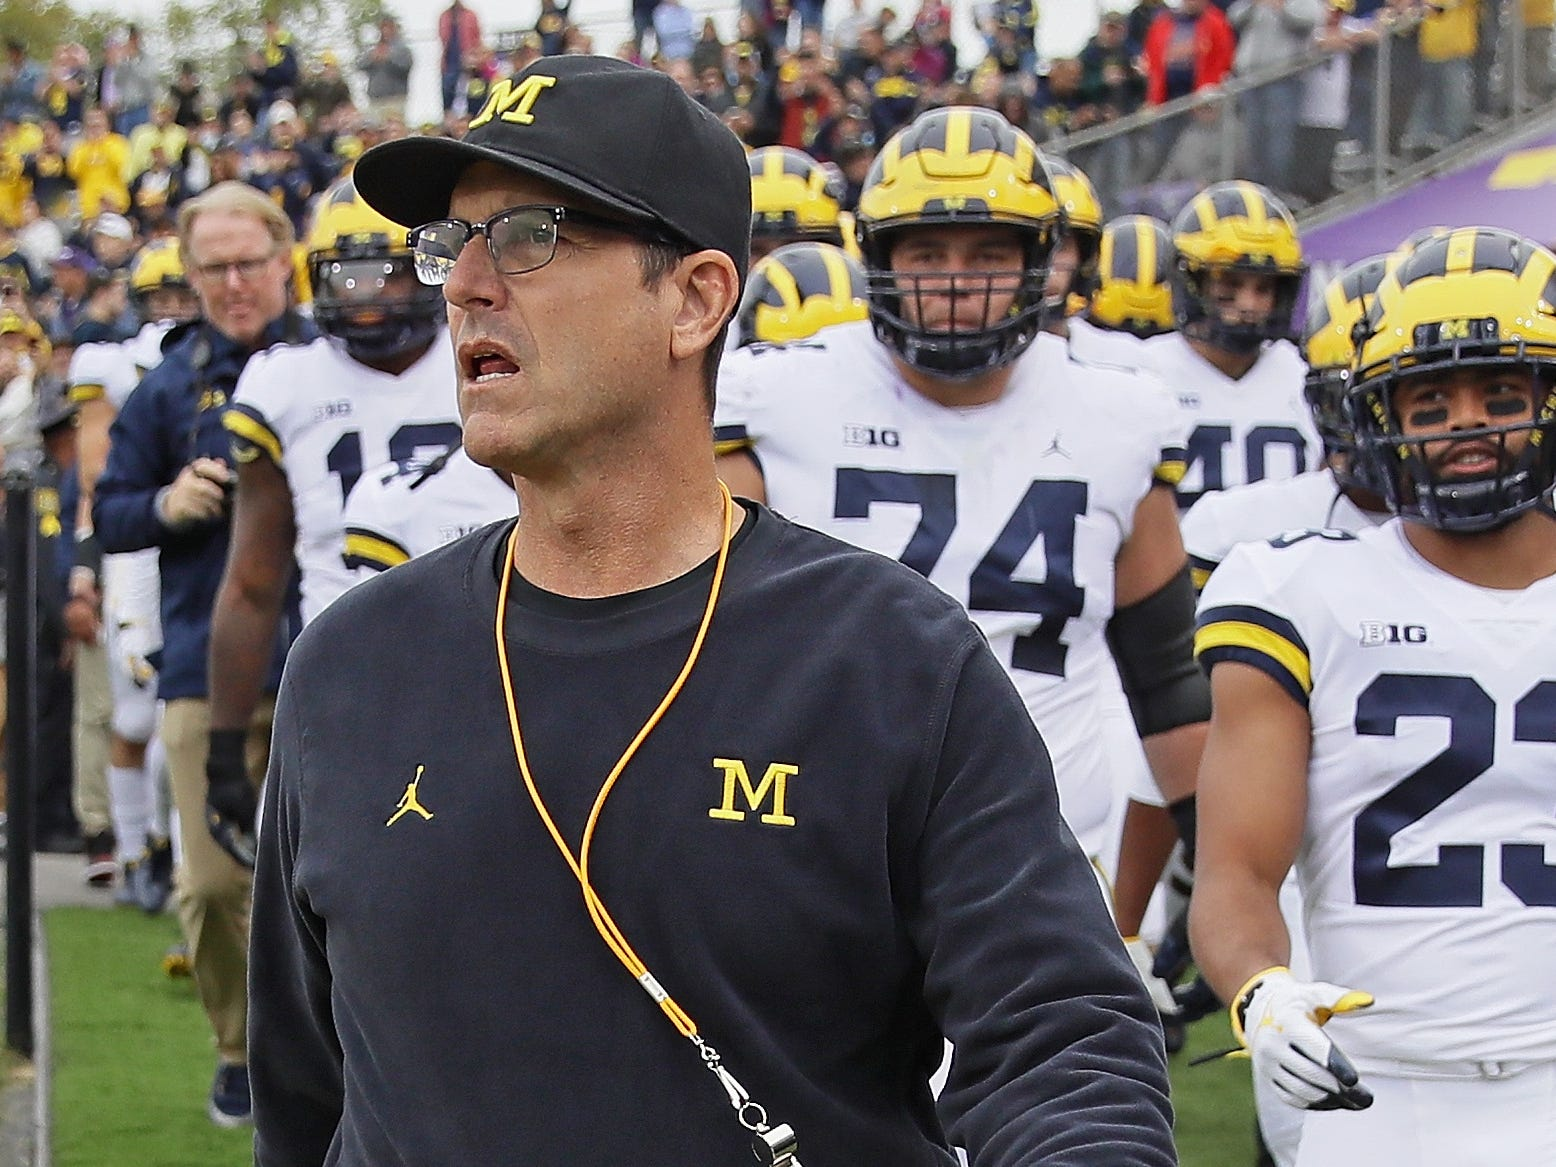 Michigan coach Jim Harbaugh leads his team onto the field before the game against Northwestern on Sept. 29, 2018 in Evanston, Ill.